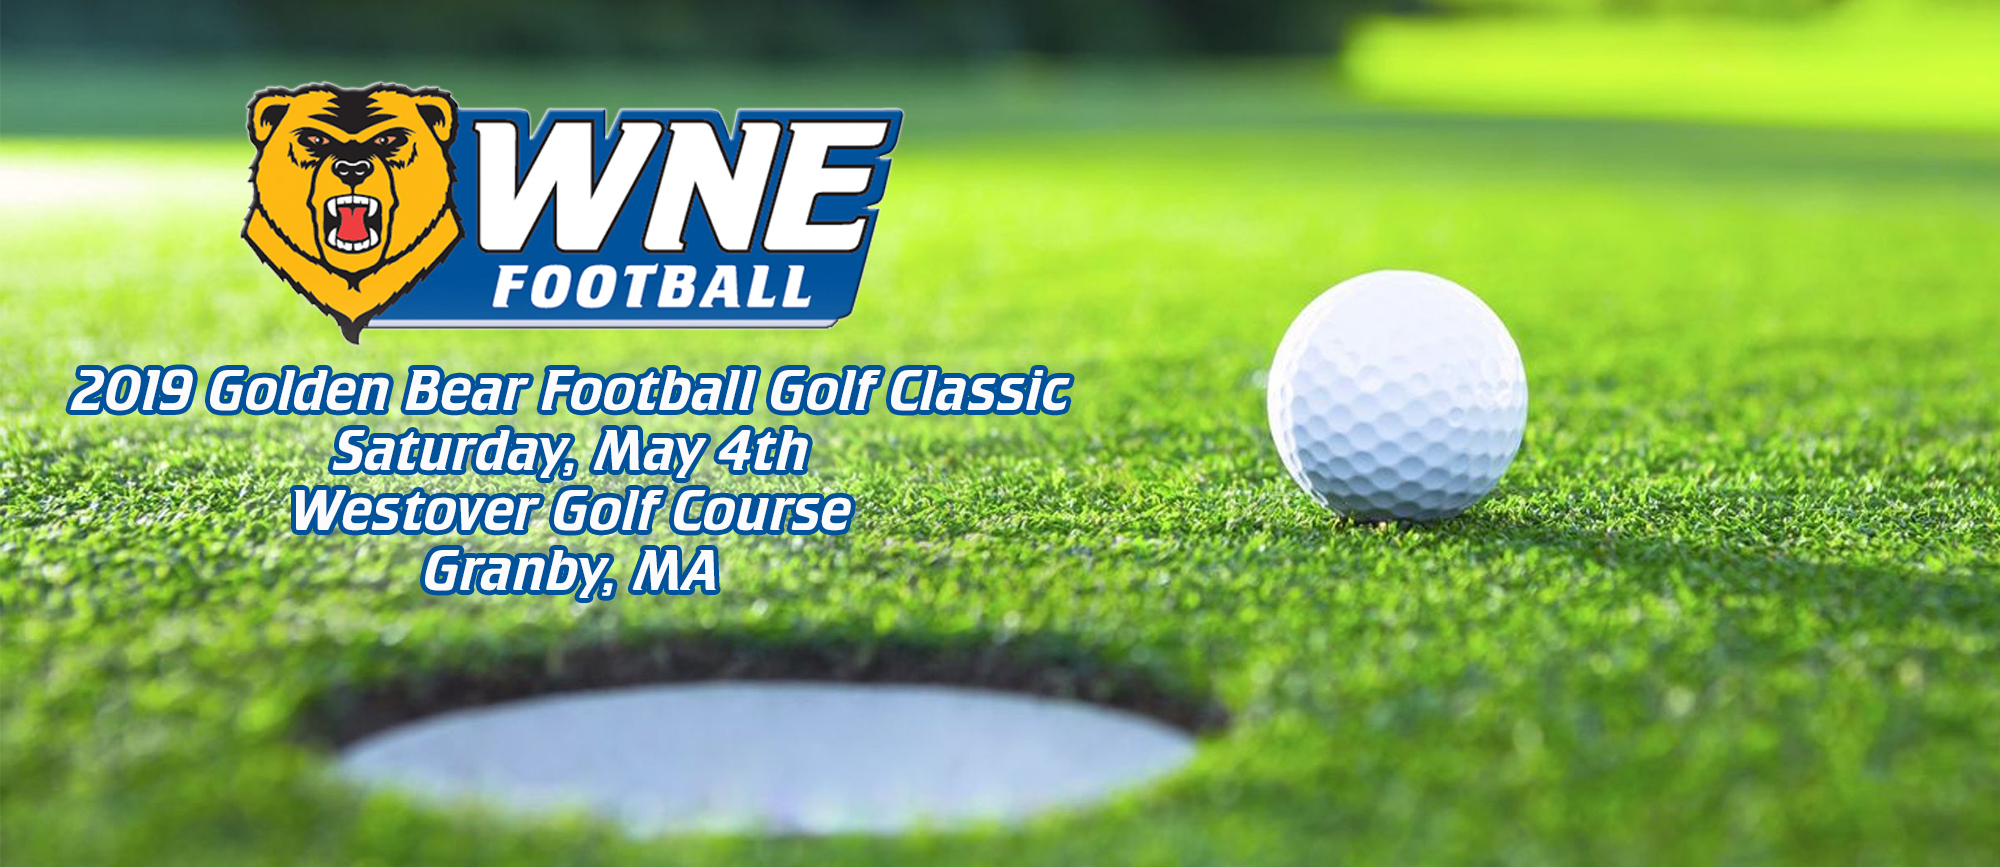 2019 Golden Bear Football Golf Classic Set for Saturday, May 4th